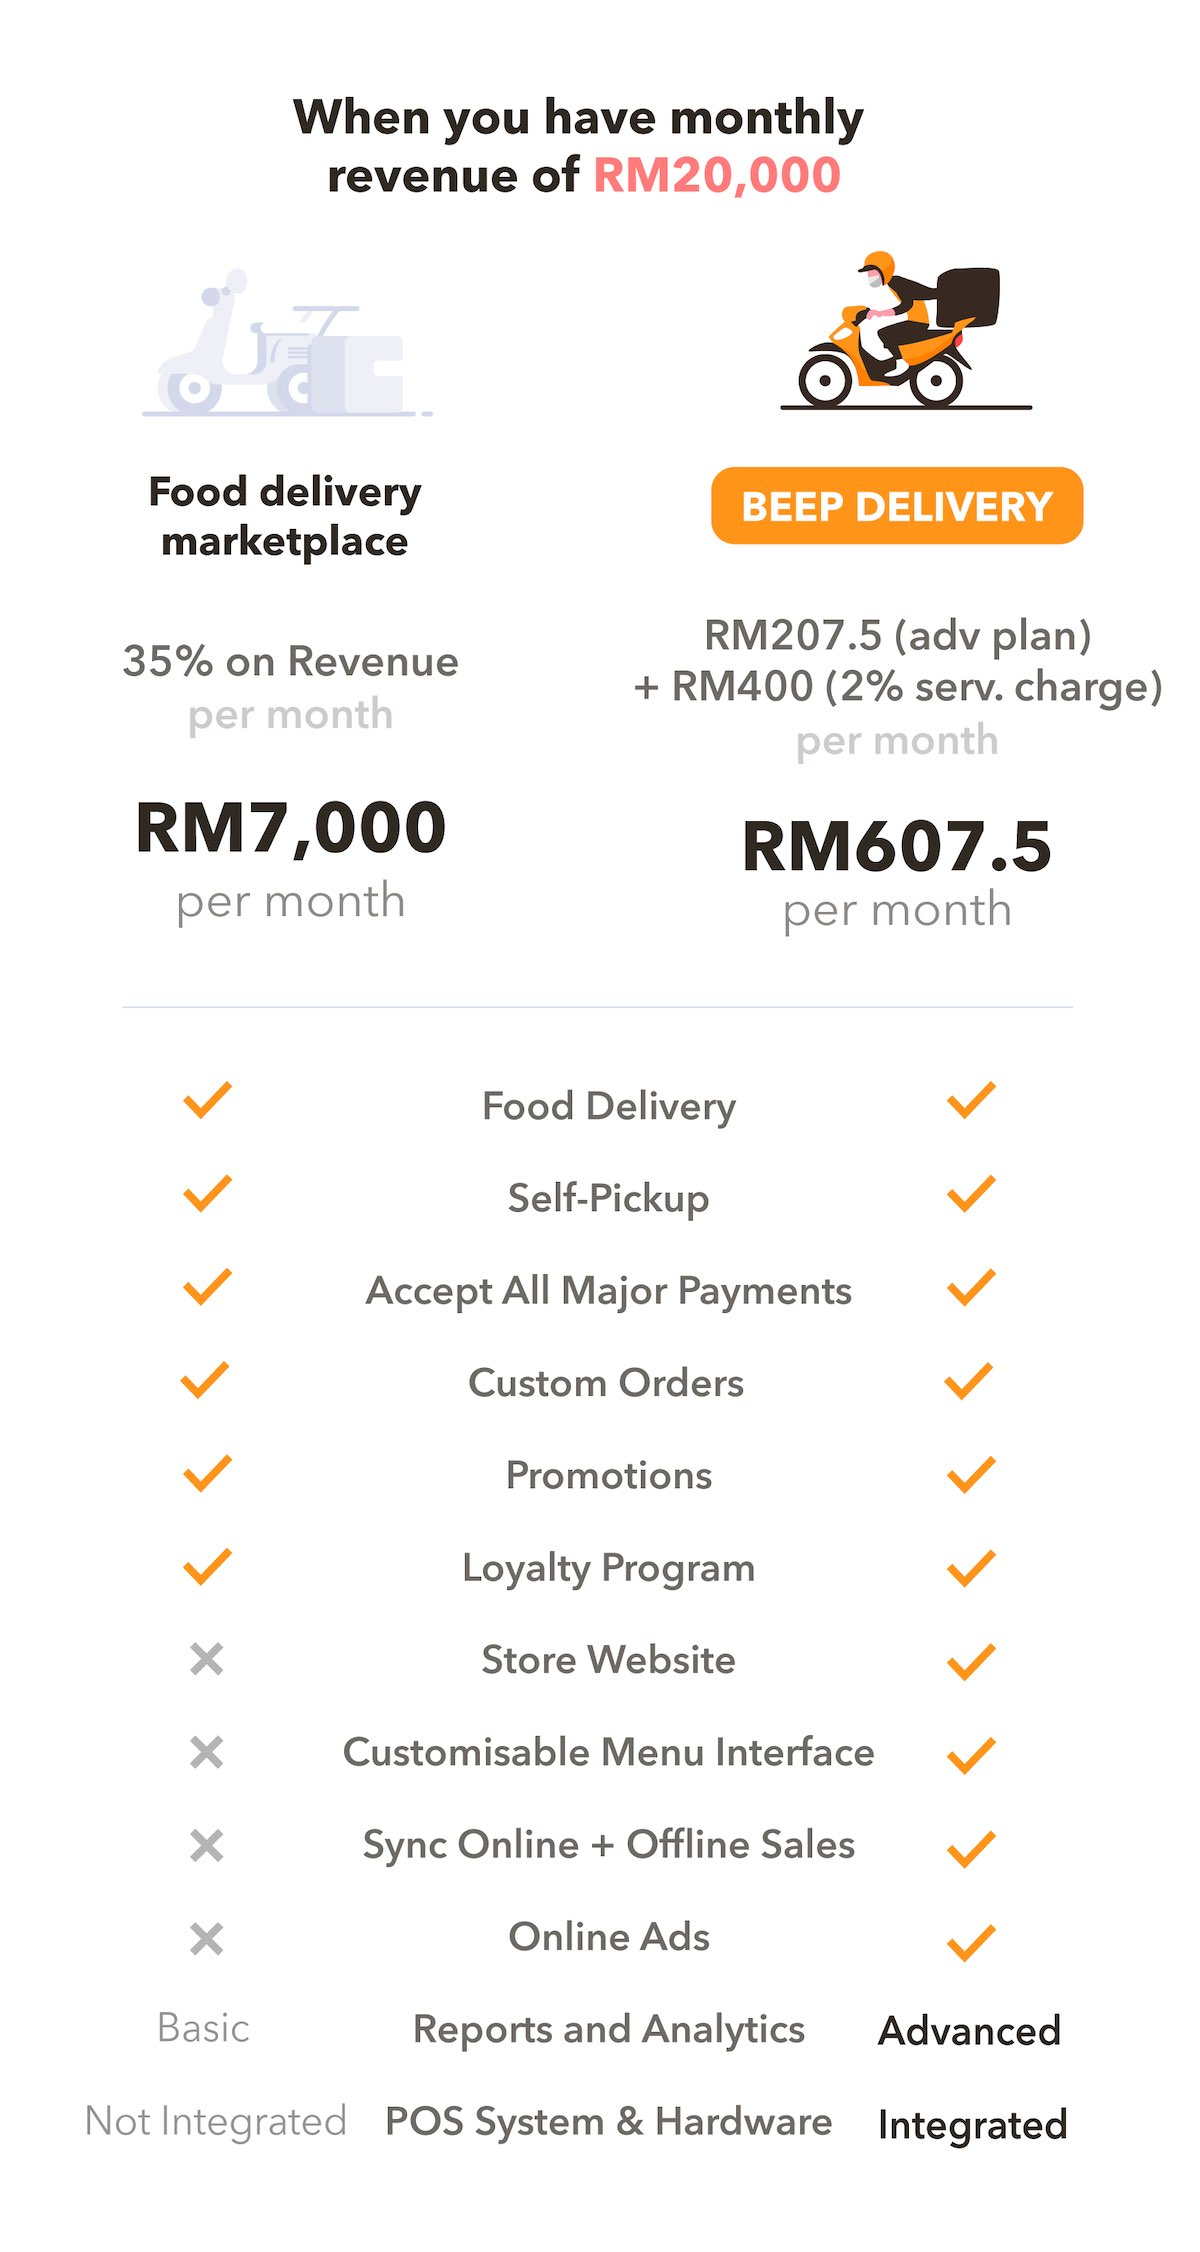 food delivery marketplace vs. Beep Delivery fee comparison chart F&B cafe restaurant SME small business Malaysia